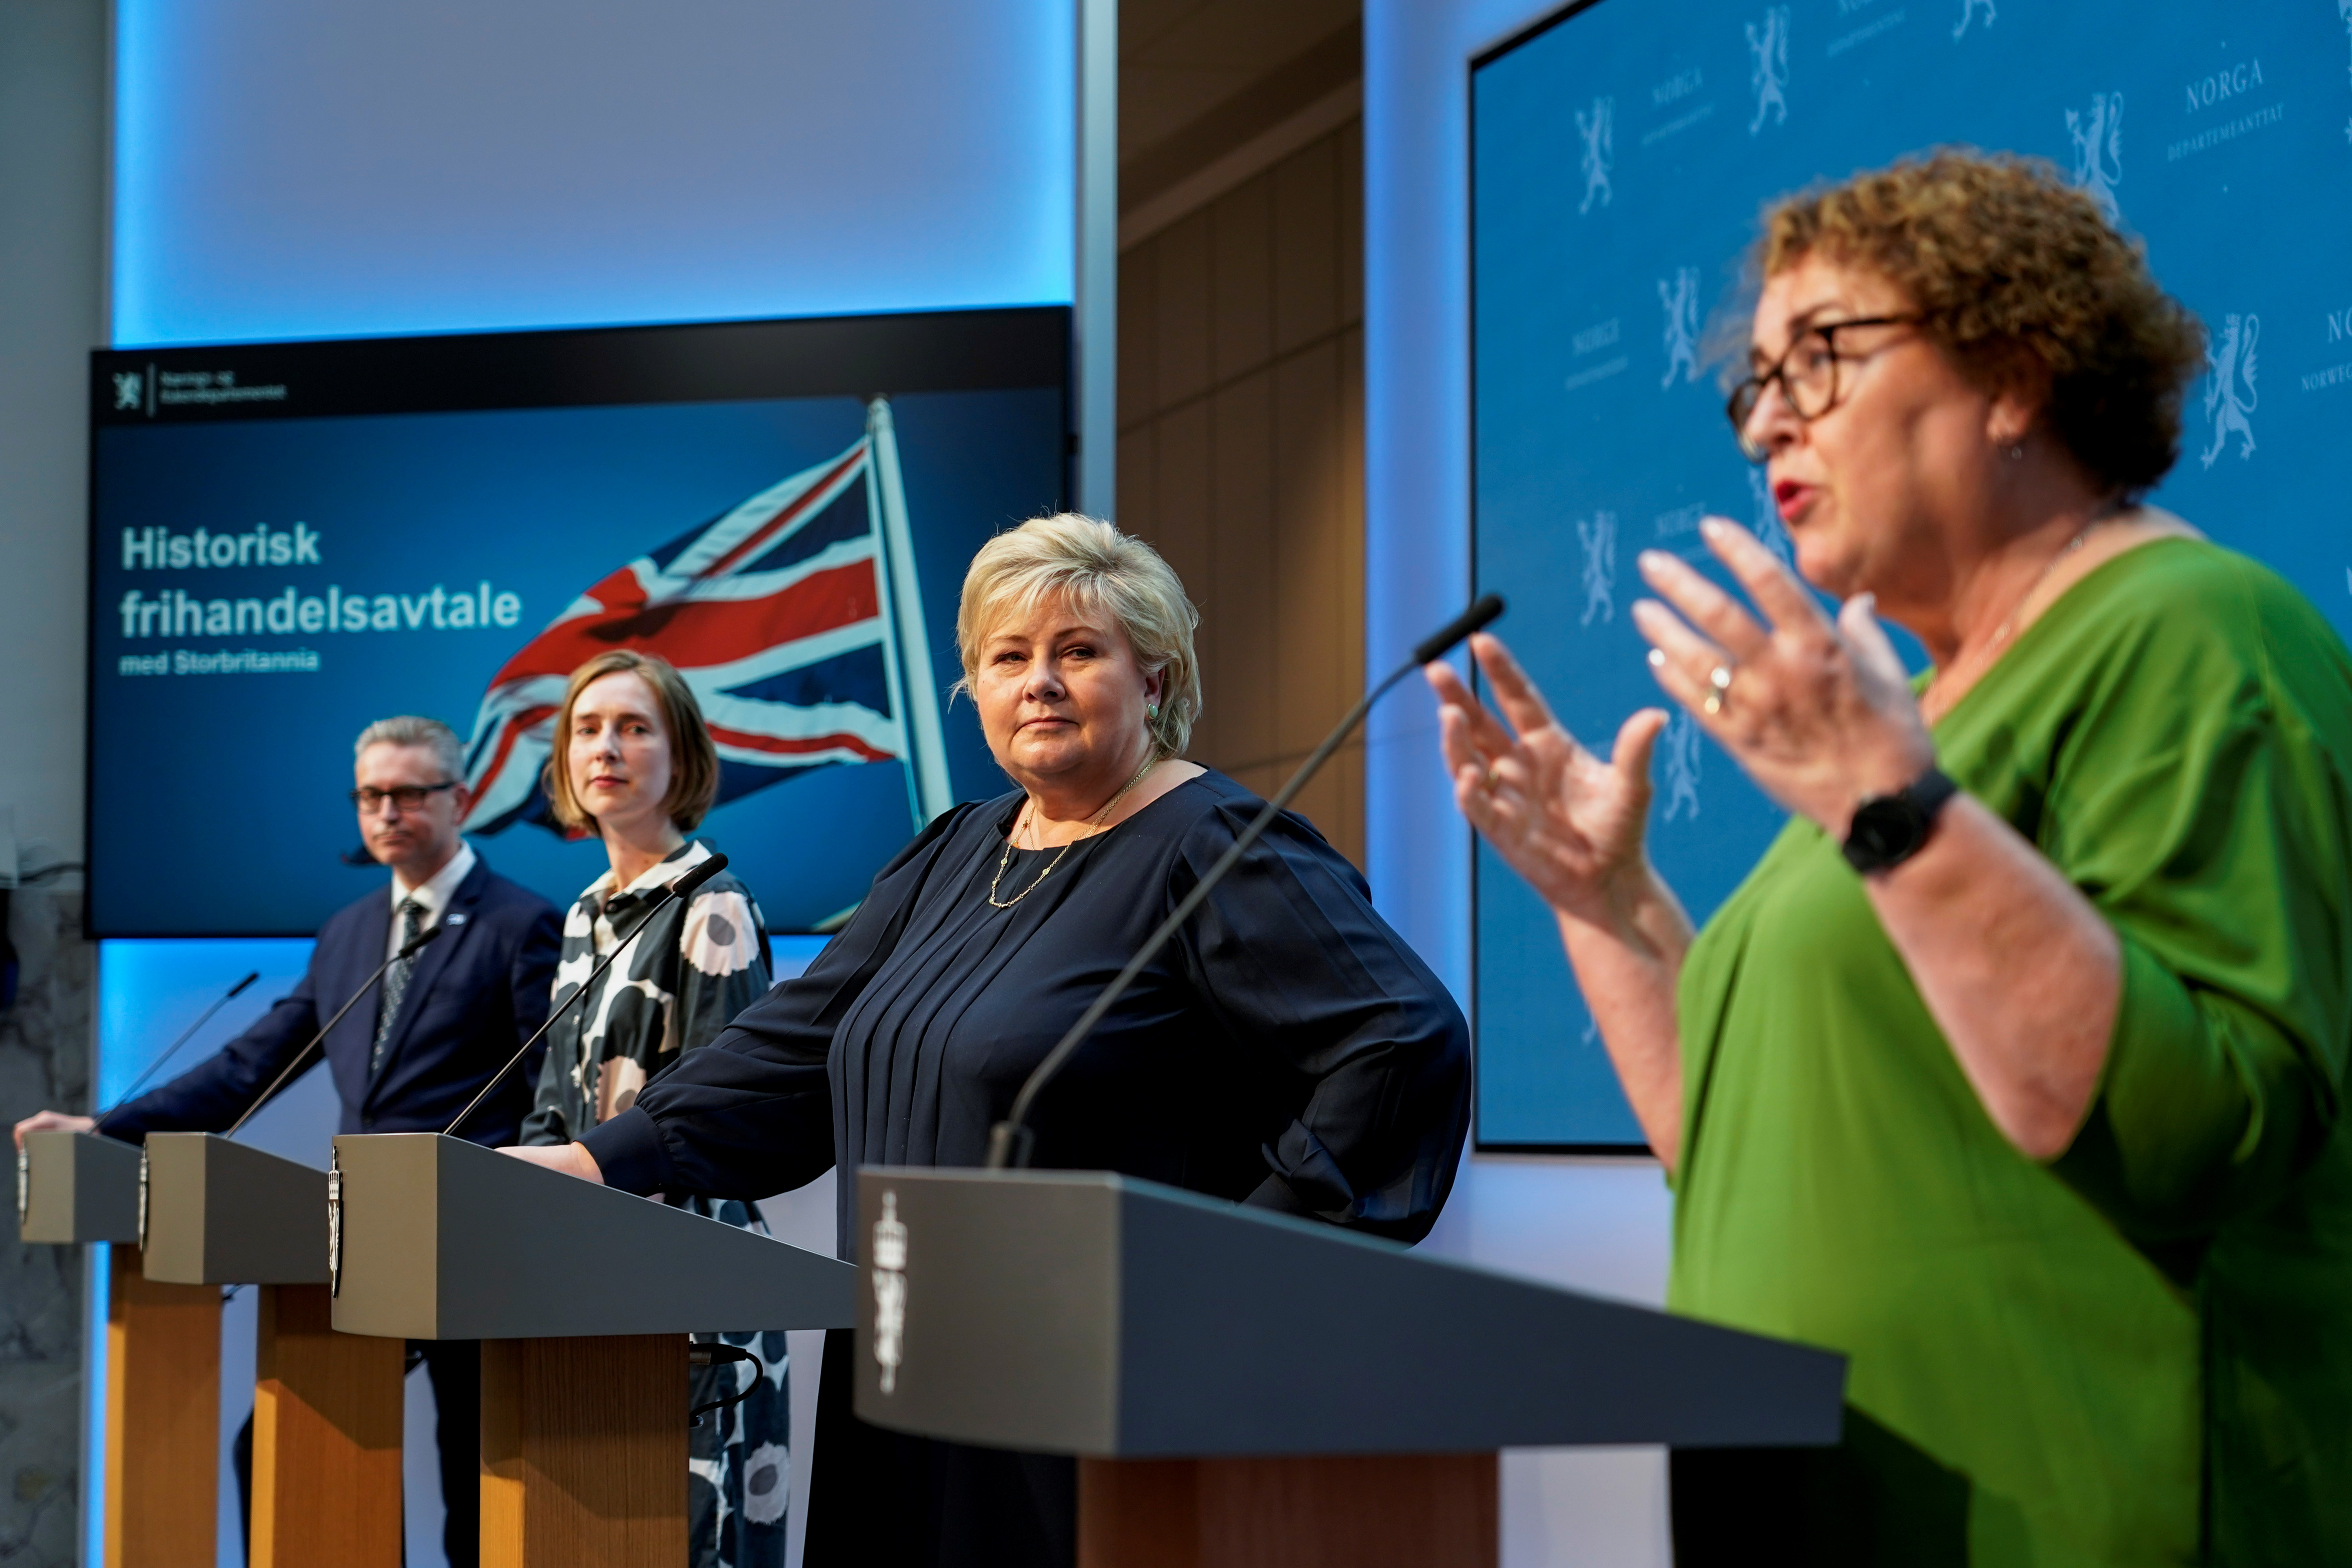 Norway's Minister of Fisheries and Seafood Odd Emil Ingebrigtsen, Minister of Trade and Industry Iselin Nyboe, Prime Minister Erna Solberg, and Minister of Agriculture and Food Olaug Bollestad attend a news conference on the status of free trade negotiations with the United Kingdom, in Oslo, Norway June 4, 2021. NTB/Gorm Kallestad via REUTERS